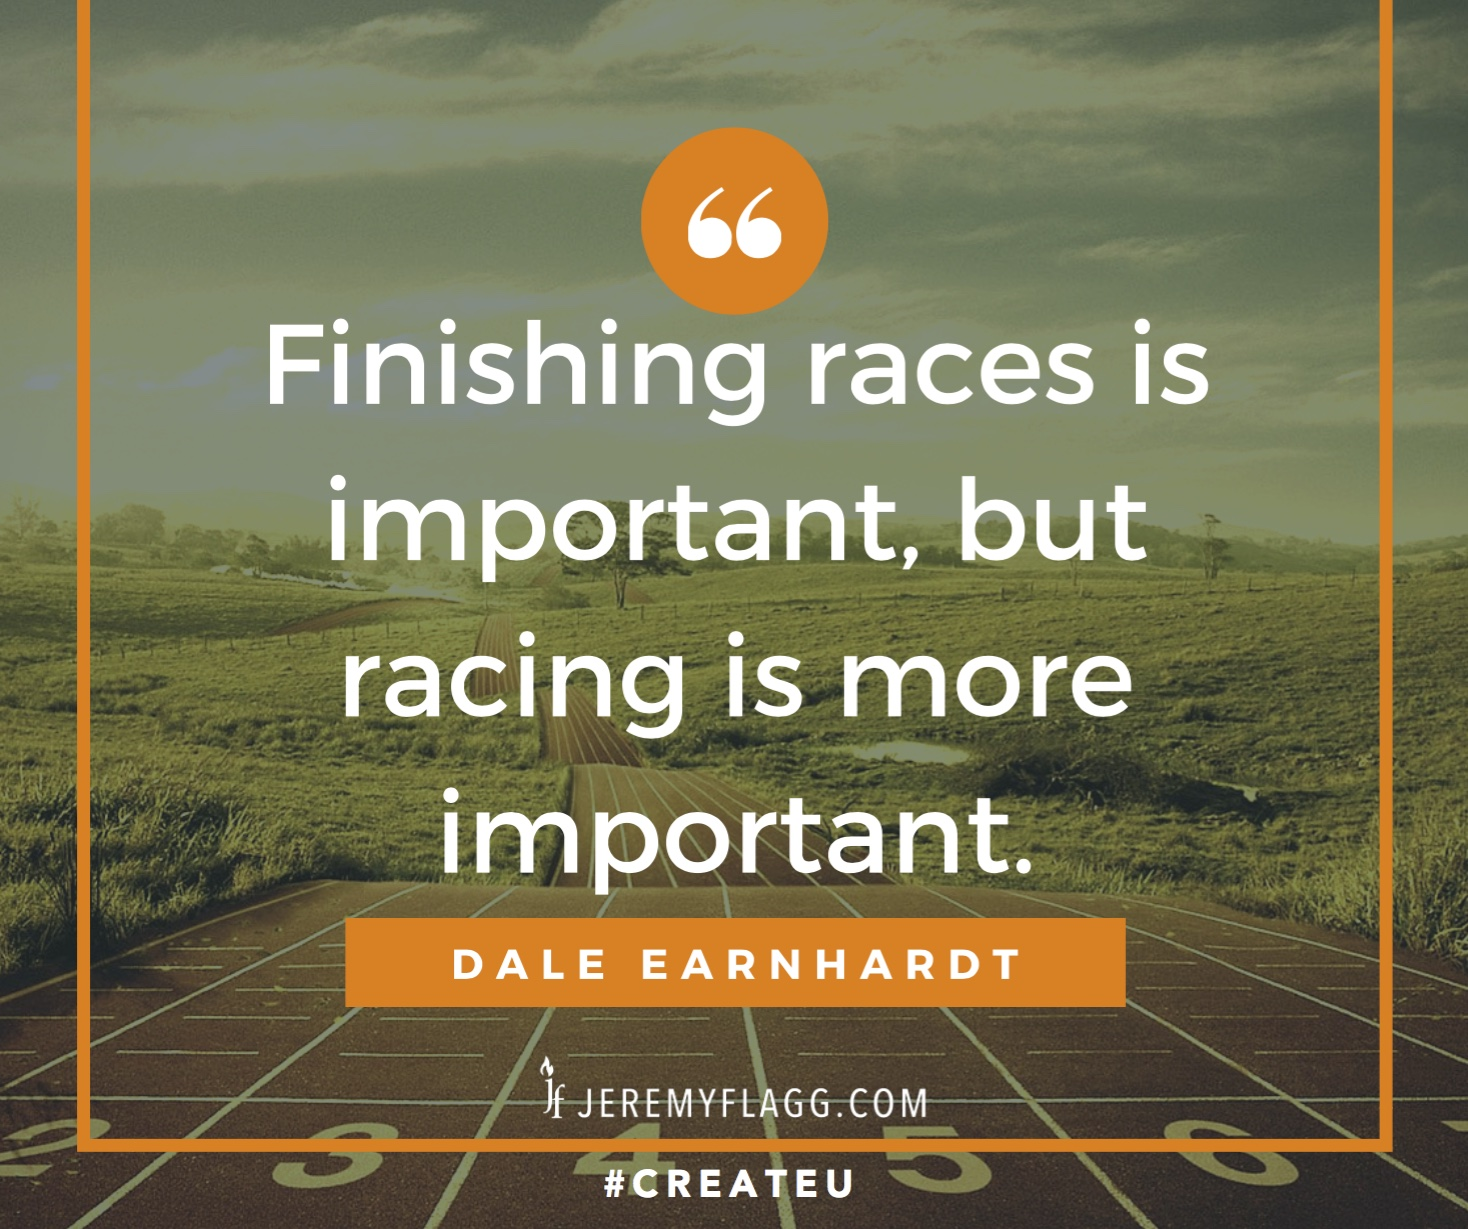 Finishing-races-quote-Dale-Earnhardt-FB